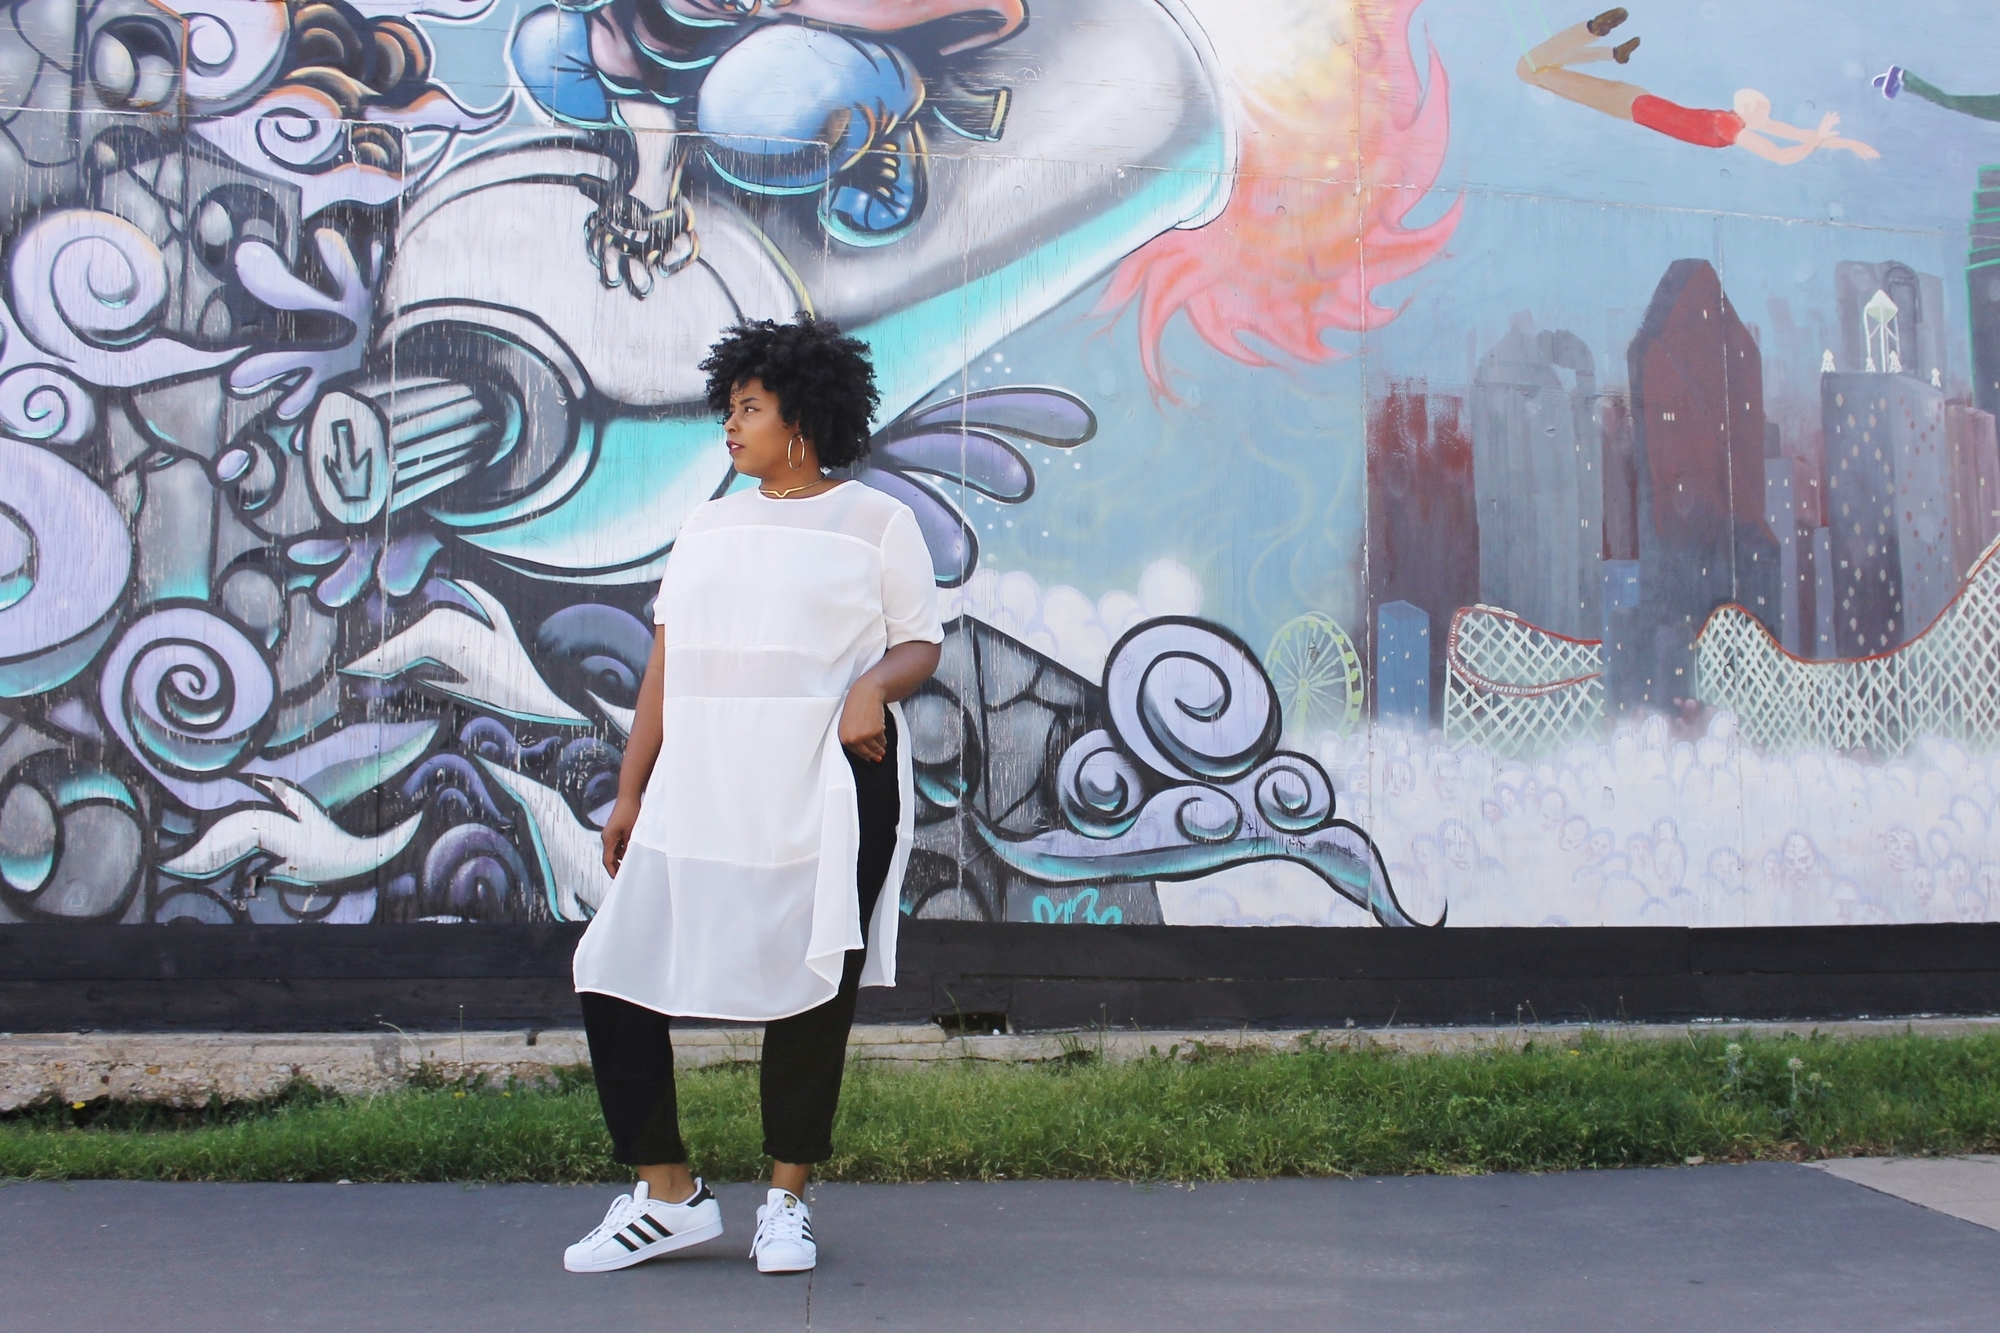 woman in front of graffiti wall posing in outfit